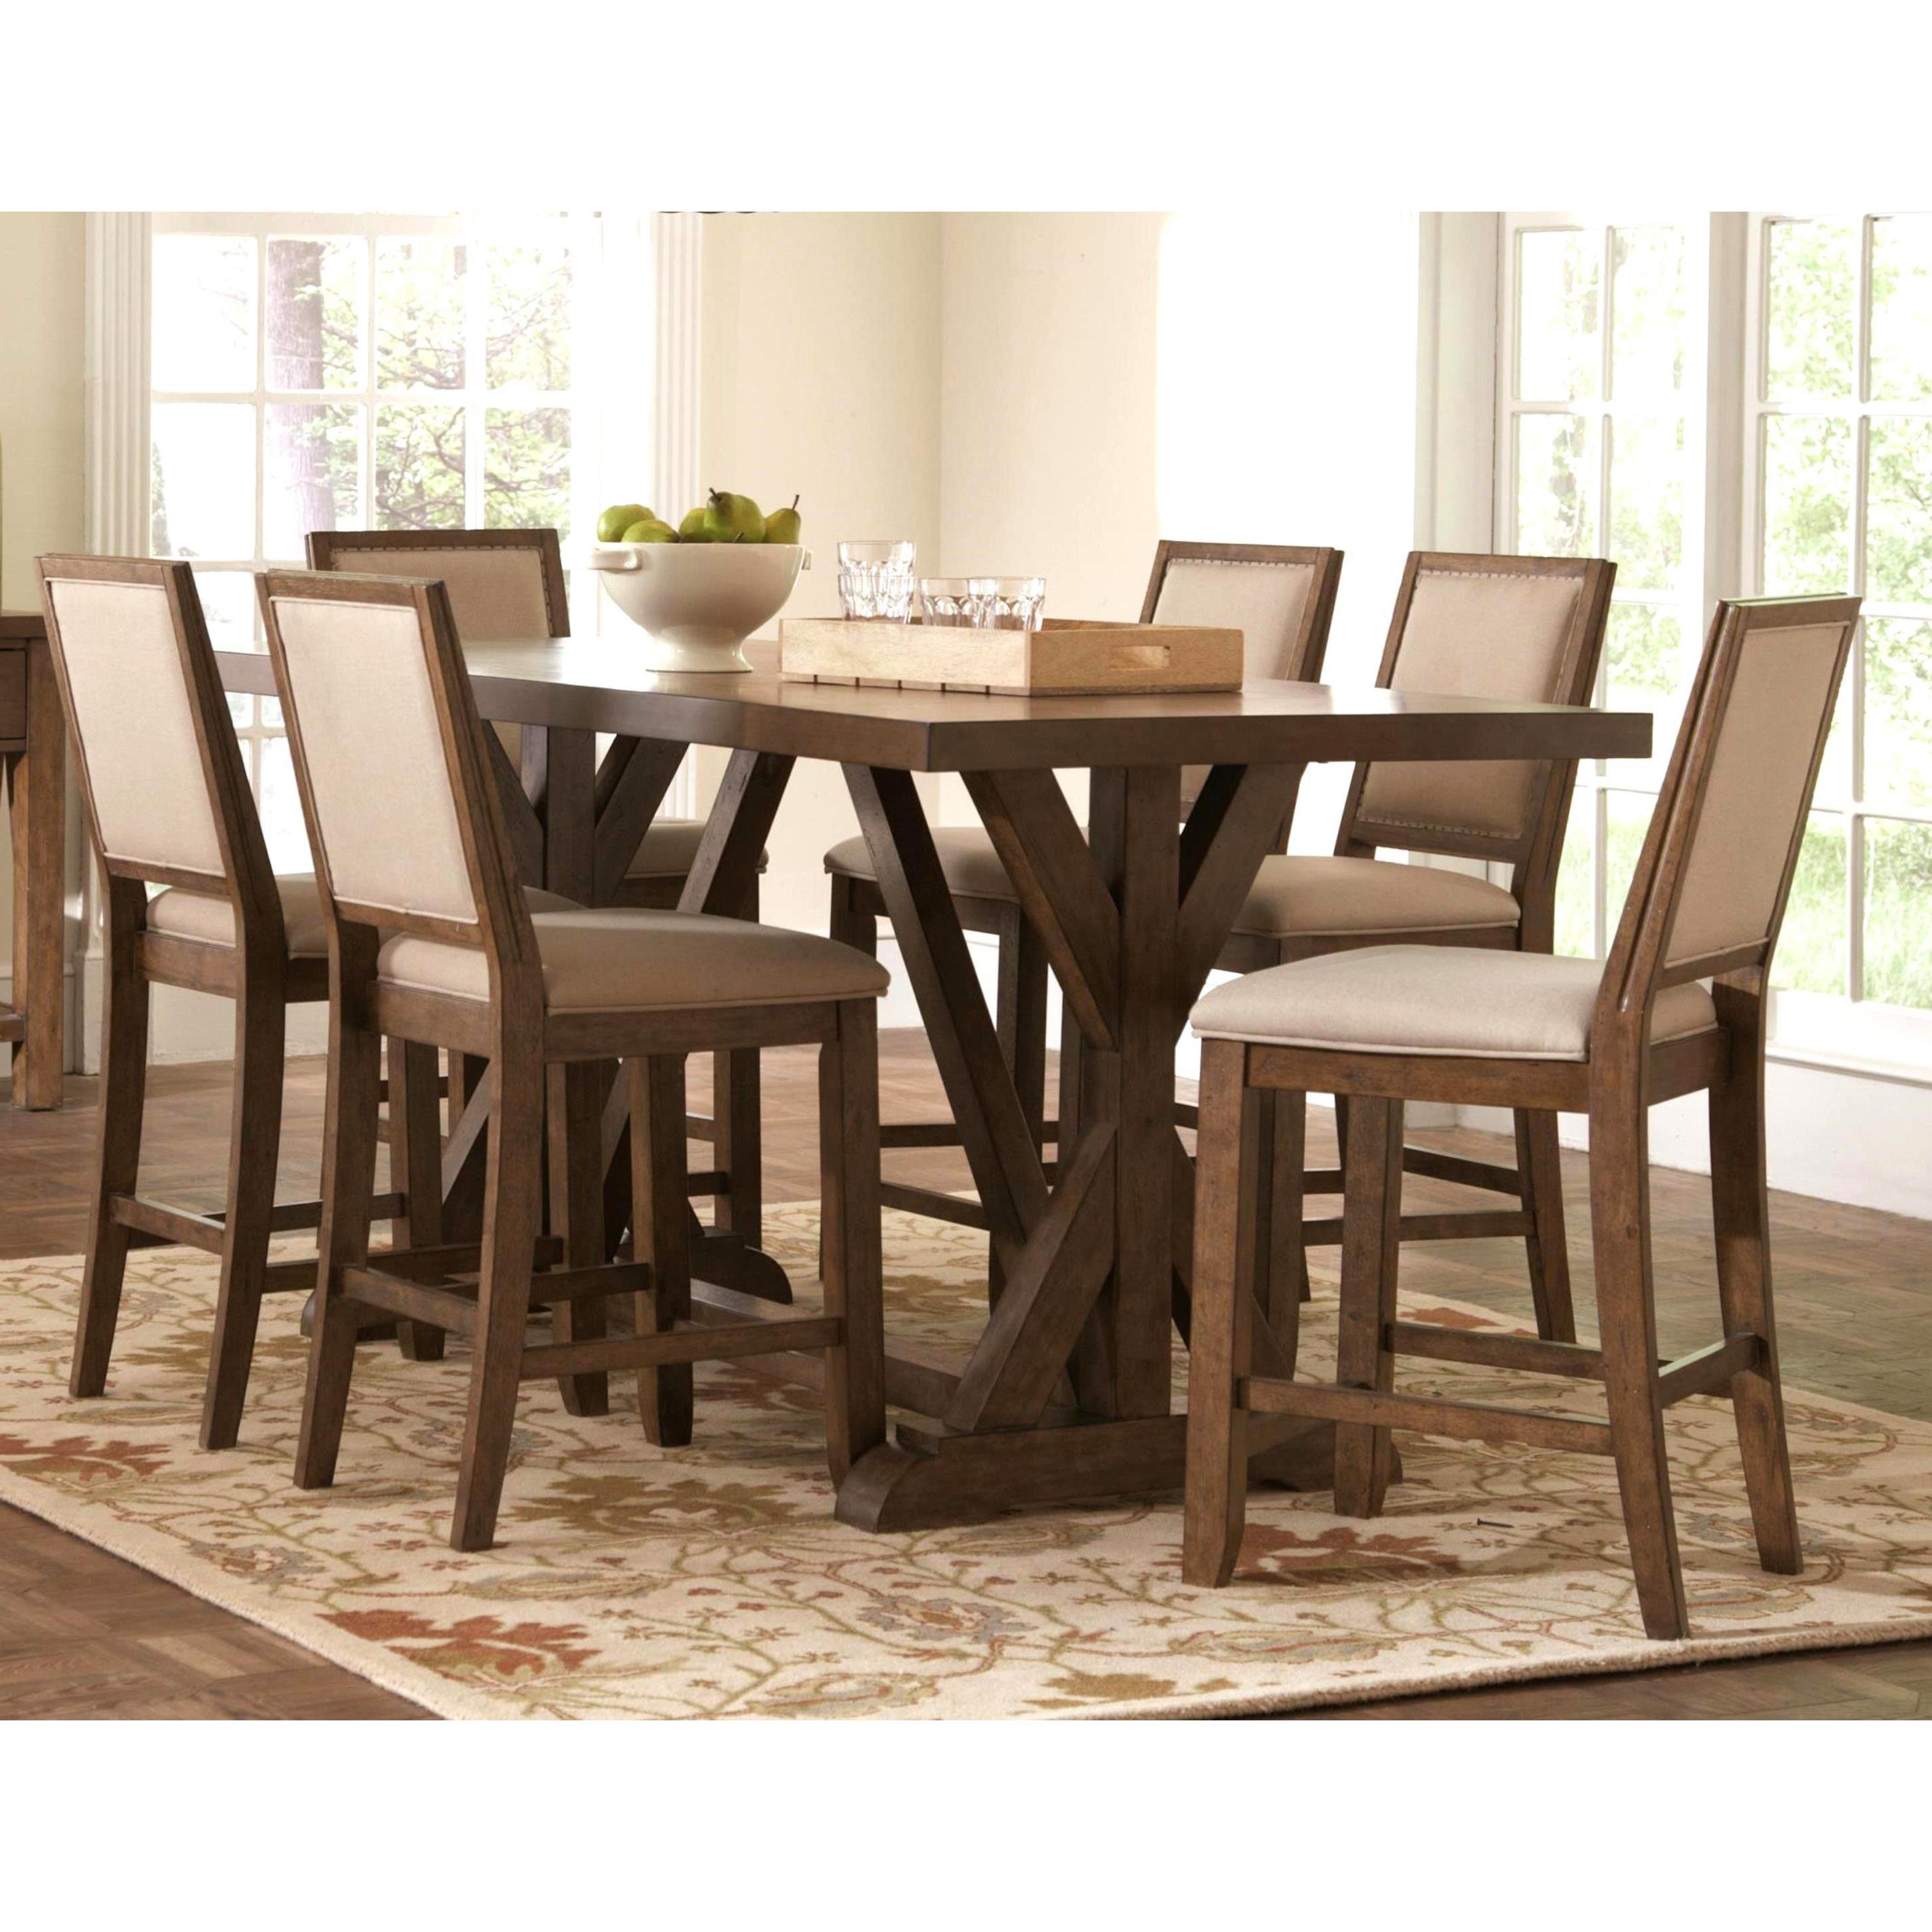 Shop Sontuoso Rustic Trestle Base European Design Counter Height 7 In Popular Wallflower 3 Piece Dining Sets (View 3 of 25)